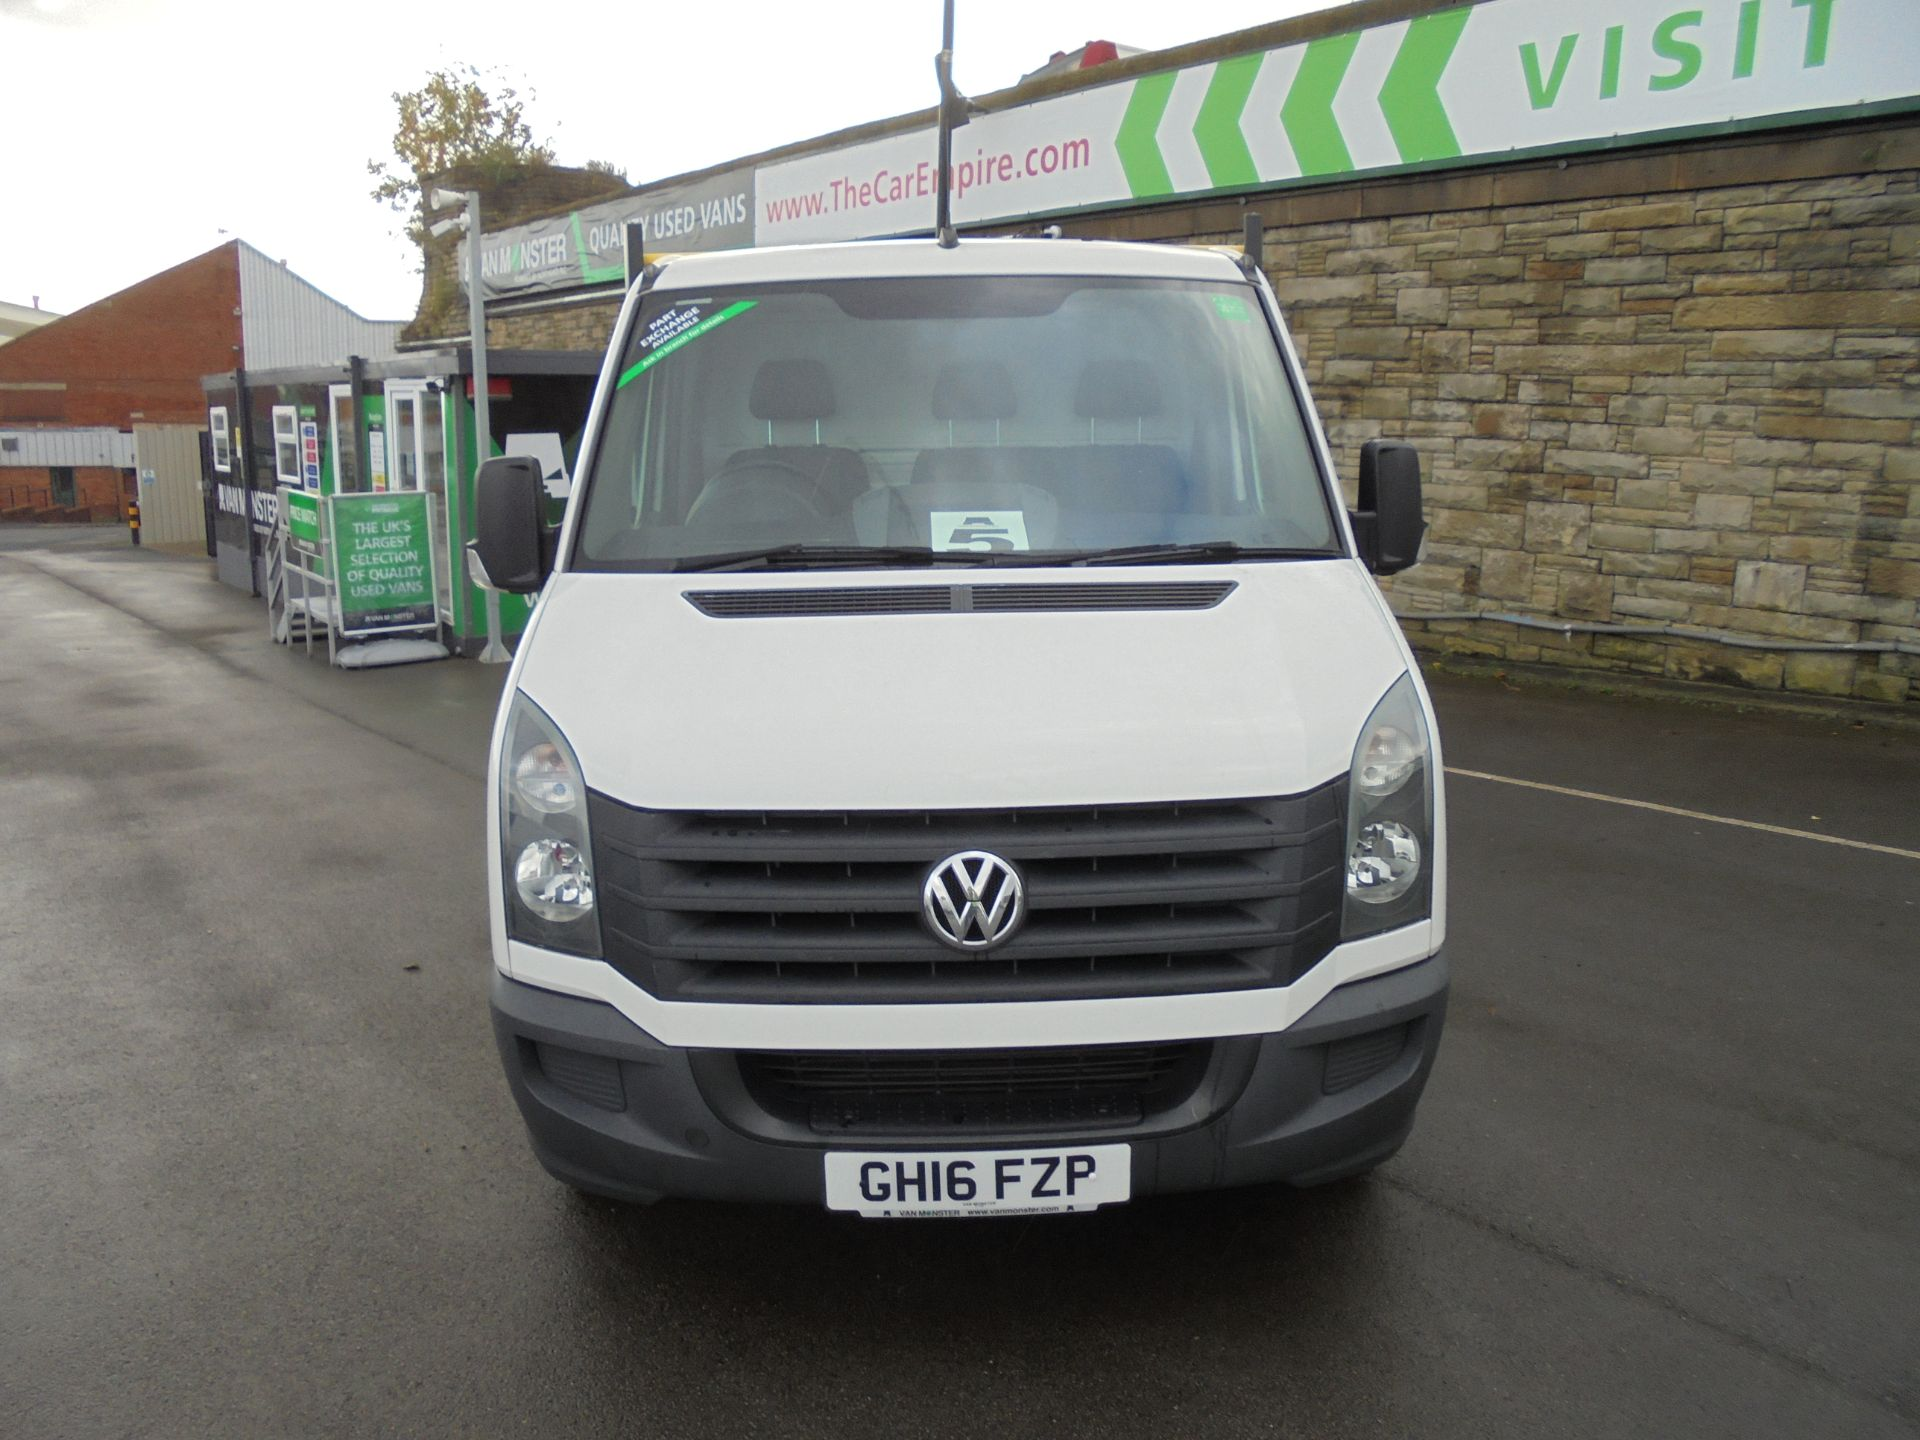 2016 Volkswagen Crafter 2.0 Tdi 136Ps Dropside (GH16FZP) Image 2